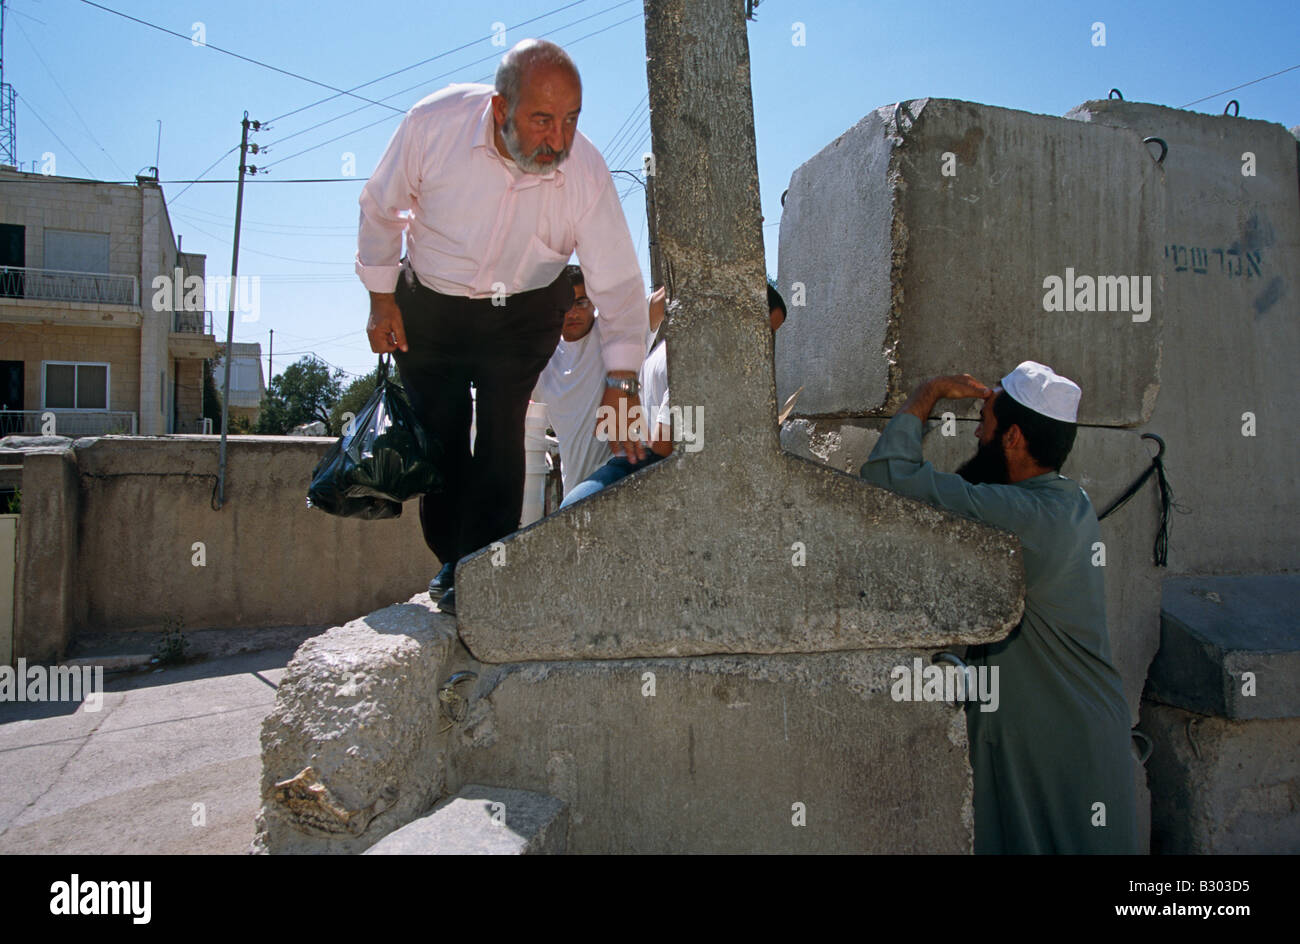 Men climbing to cross the Israeli West Bank barrier, West Bank, Palestine, Middle East - Stock Image